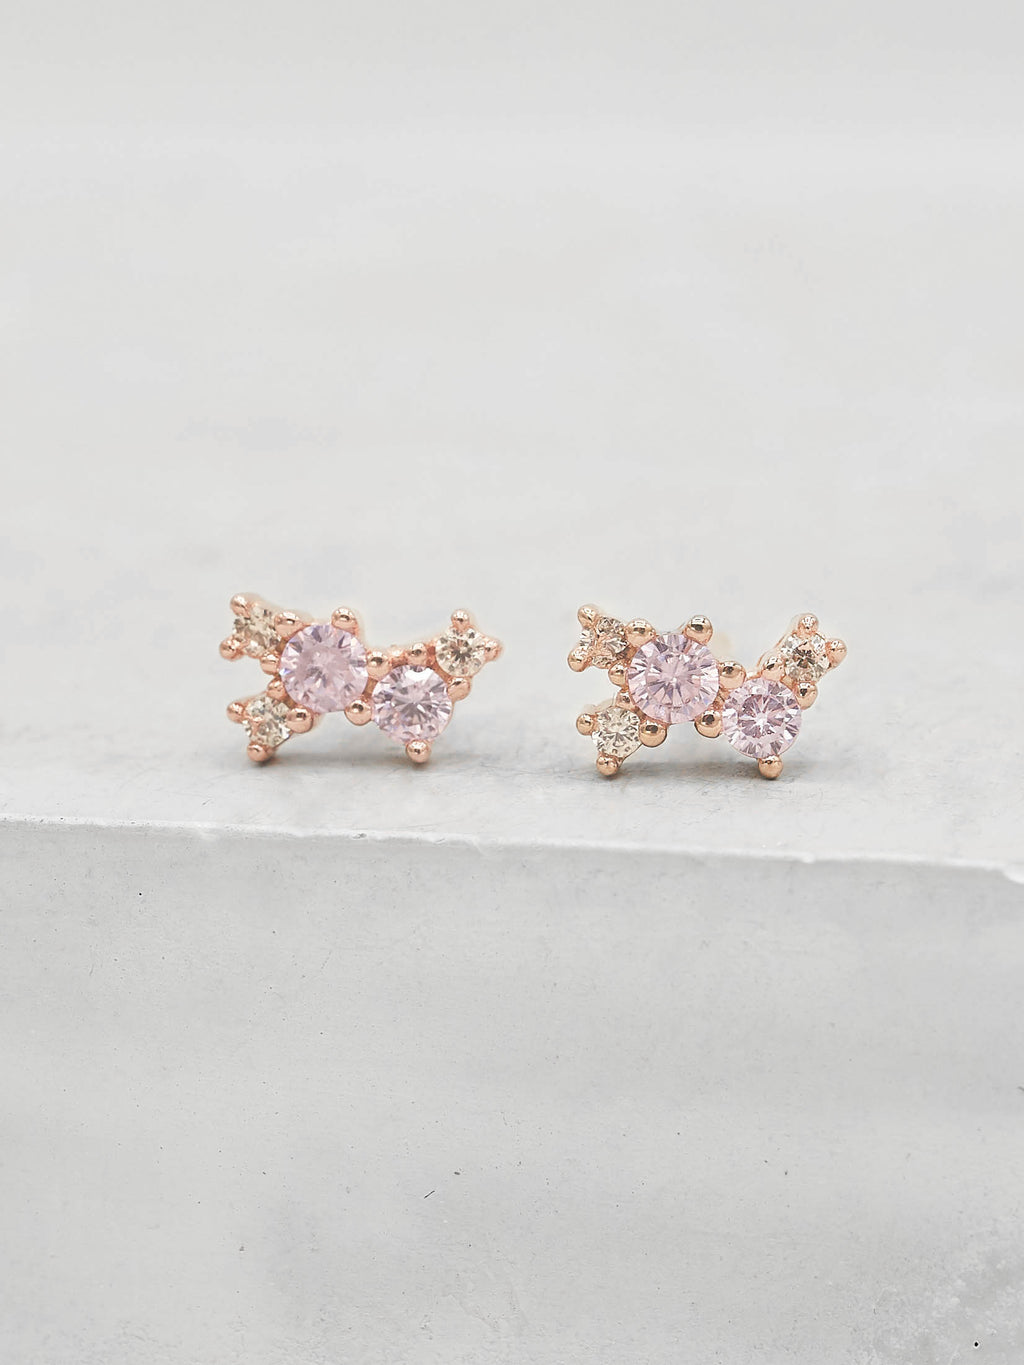 Rose Gold Plated Brass Pink and Champagne CZ Cubic Zirconia Twilight Style Stud dainty Stud Earrings by The Faint Hearted jewelry